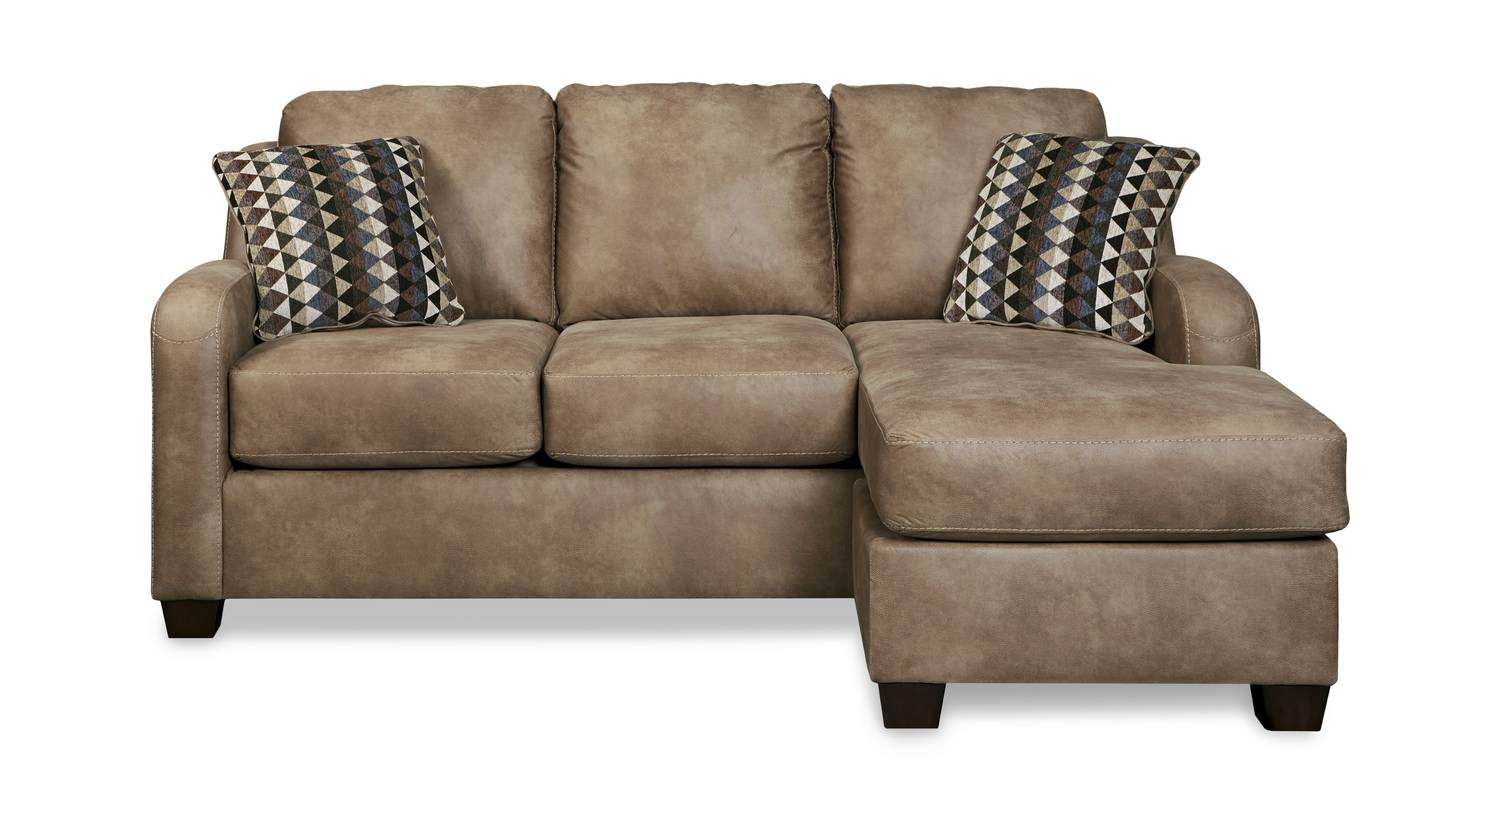 Living Room Furniture – Sofas & Couches – Hom Furniture with regard to Chintz Sofa Beds (Image 16 of 30)